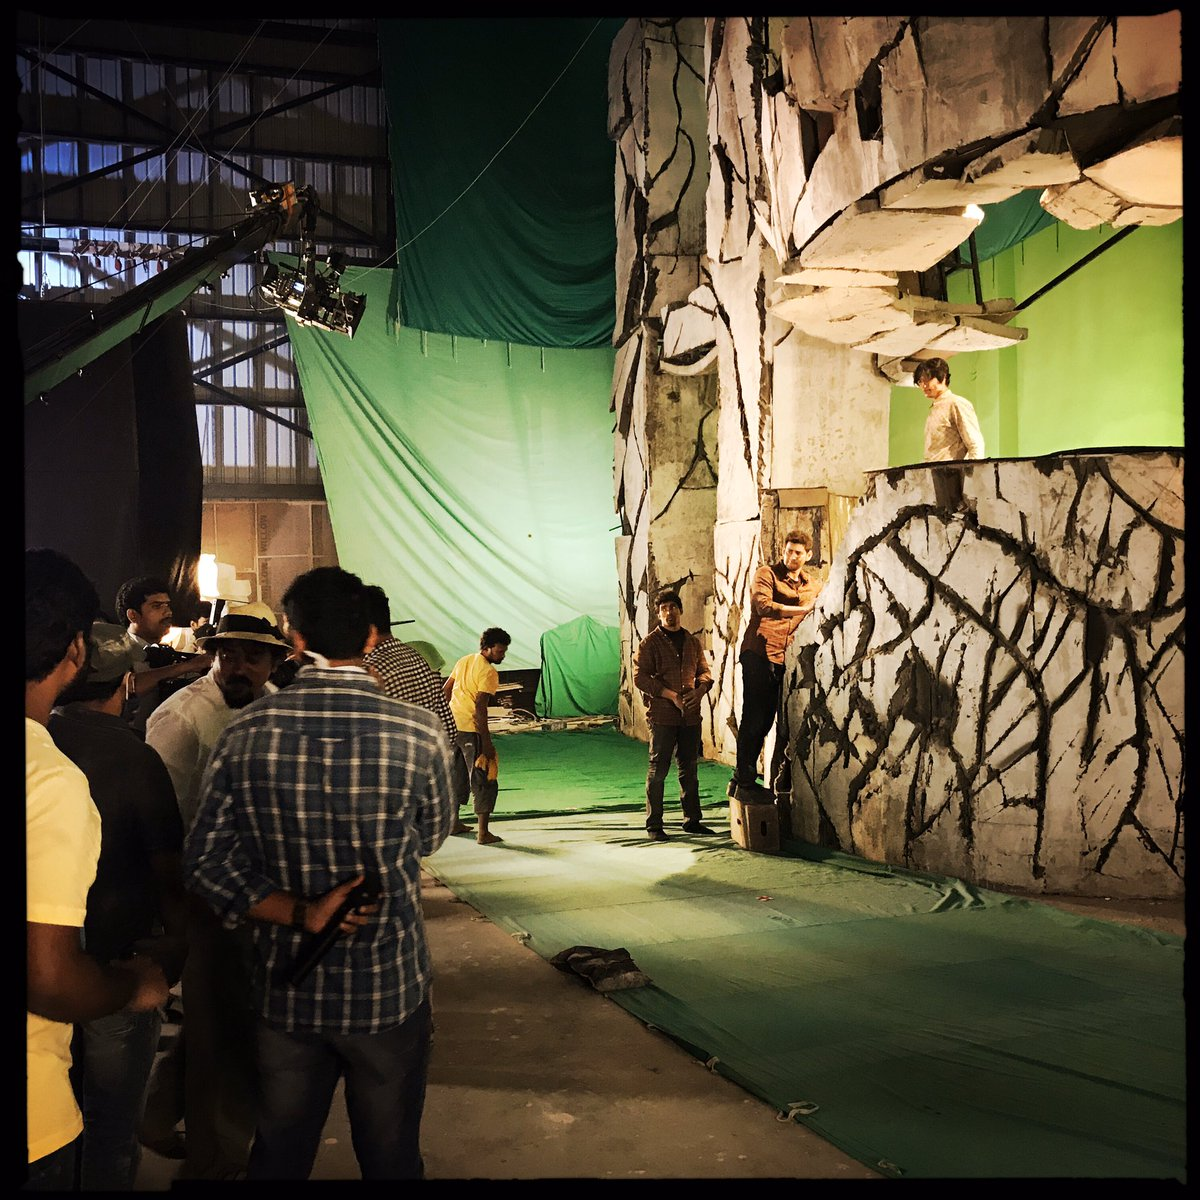 Happy birthday (again) @urstrulyMahesh . Here's some more bts from the Spyder climax that we on-set supervised VFX logging and LiDAR scanned (but didn't do the VFX) for those interested. And this time I'll hashtag..!! #Happybirthdayssmb <br>http://pic.twitter.com/2hsFtYekT9